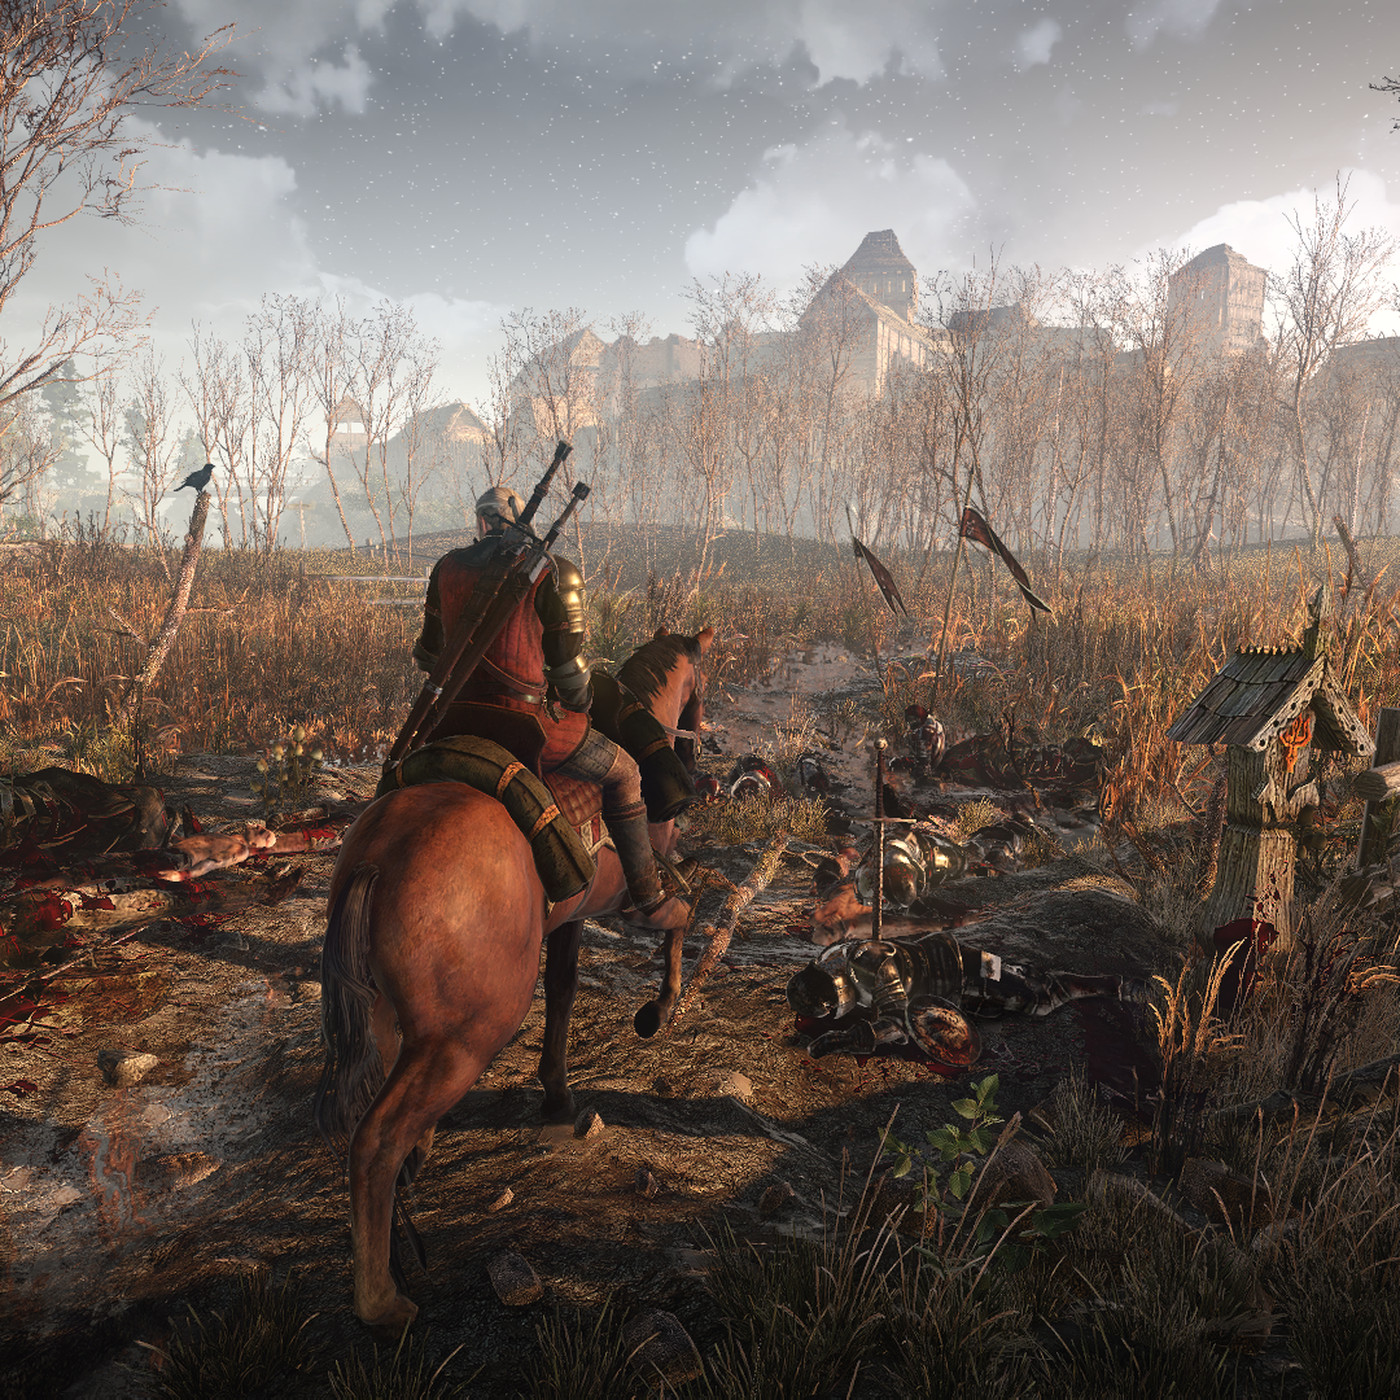 The Witcher 3 should be played on the hardest difficulty